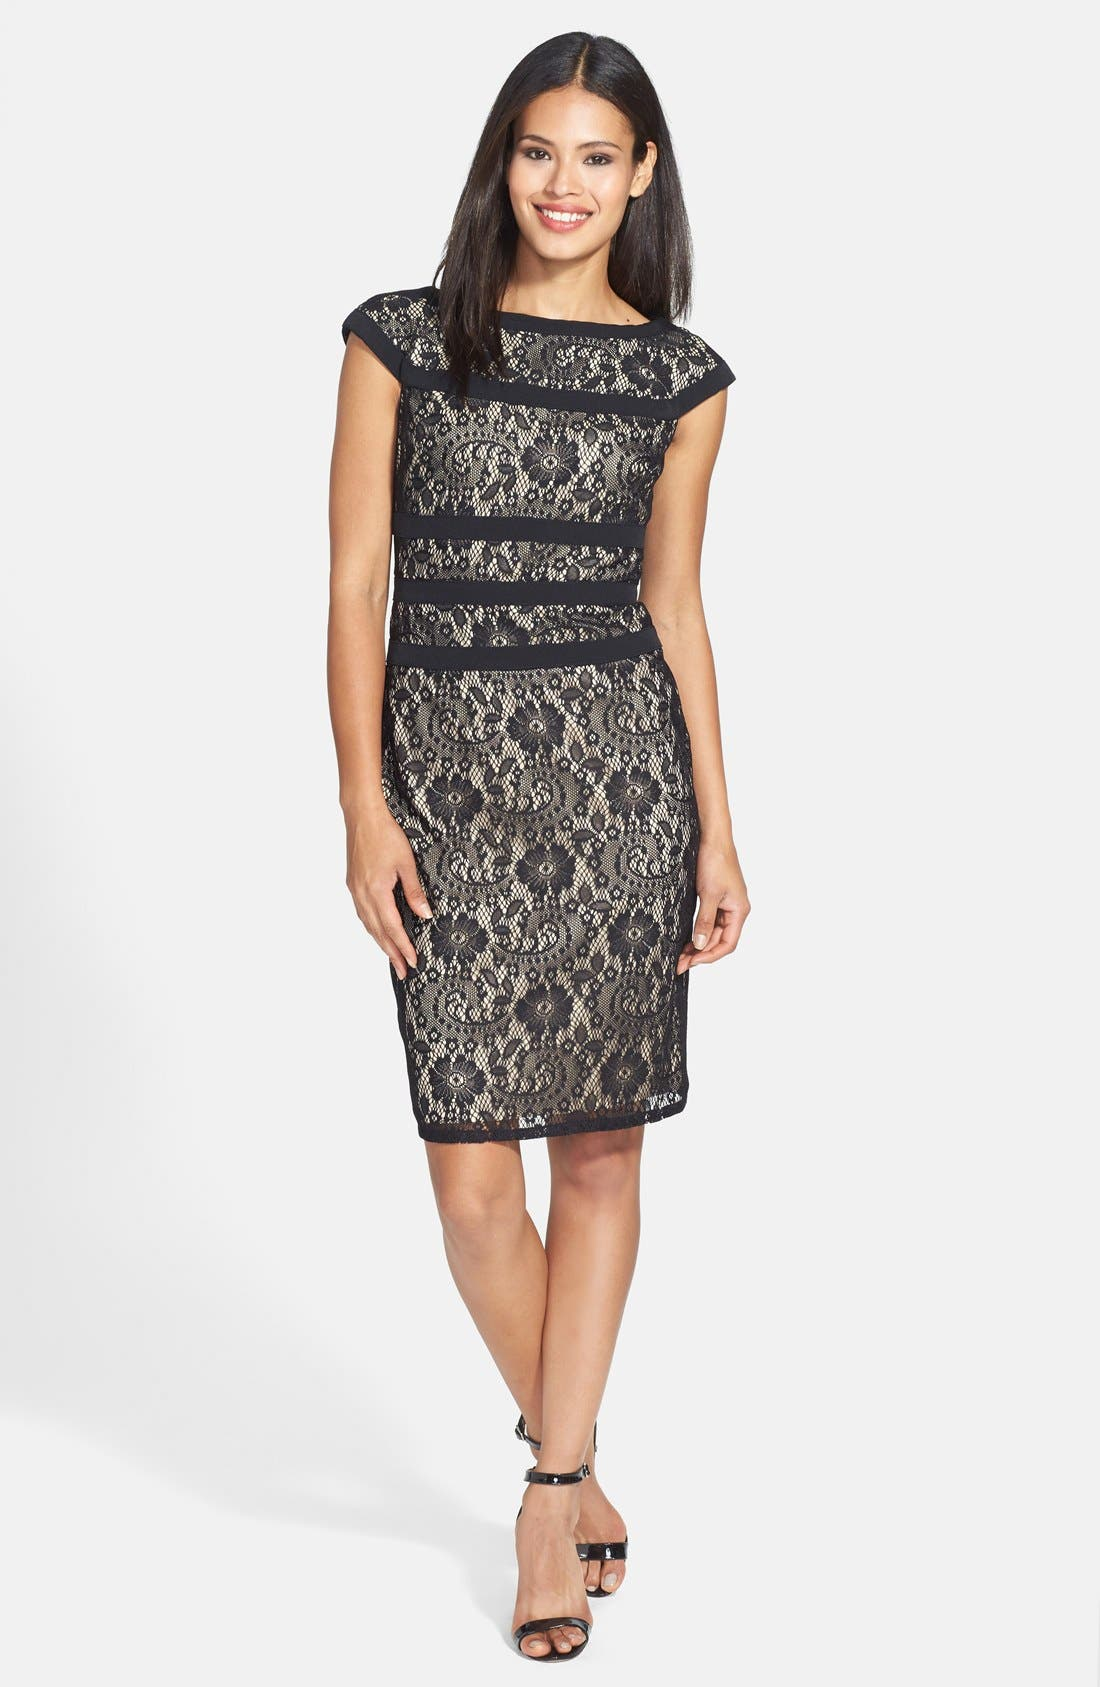 ADRIANNA PAPELL, Lace Sheath Dress, Alternate thumbnail 3, color, 001